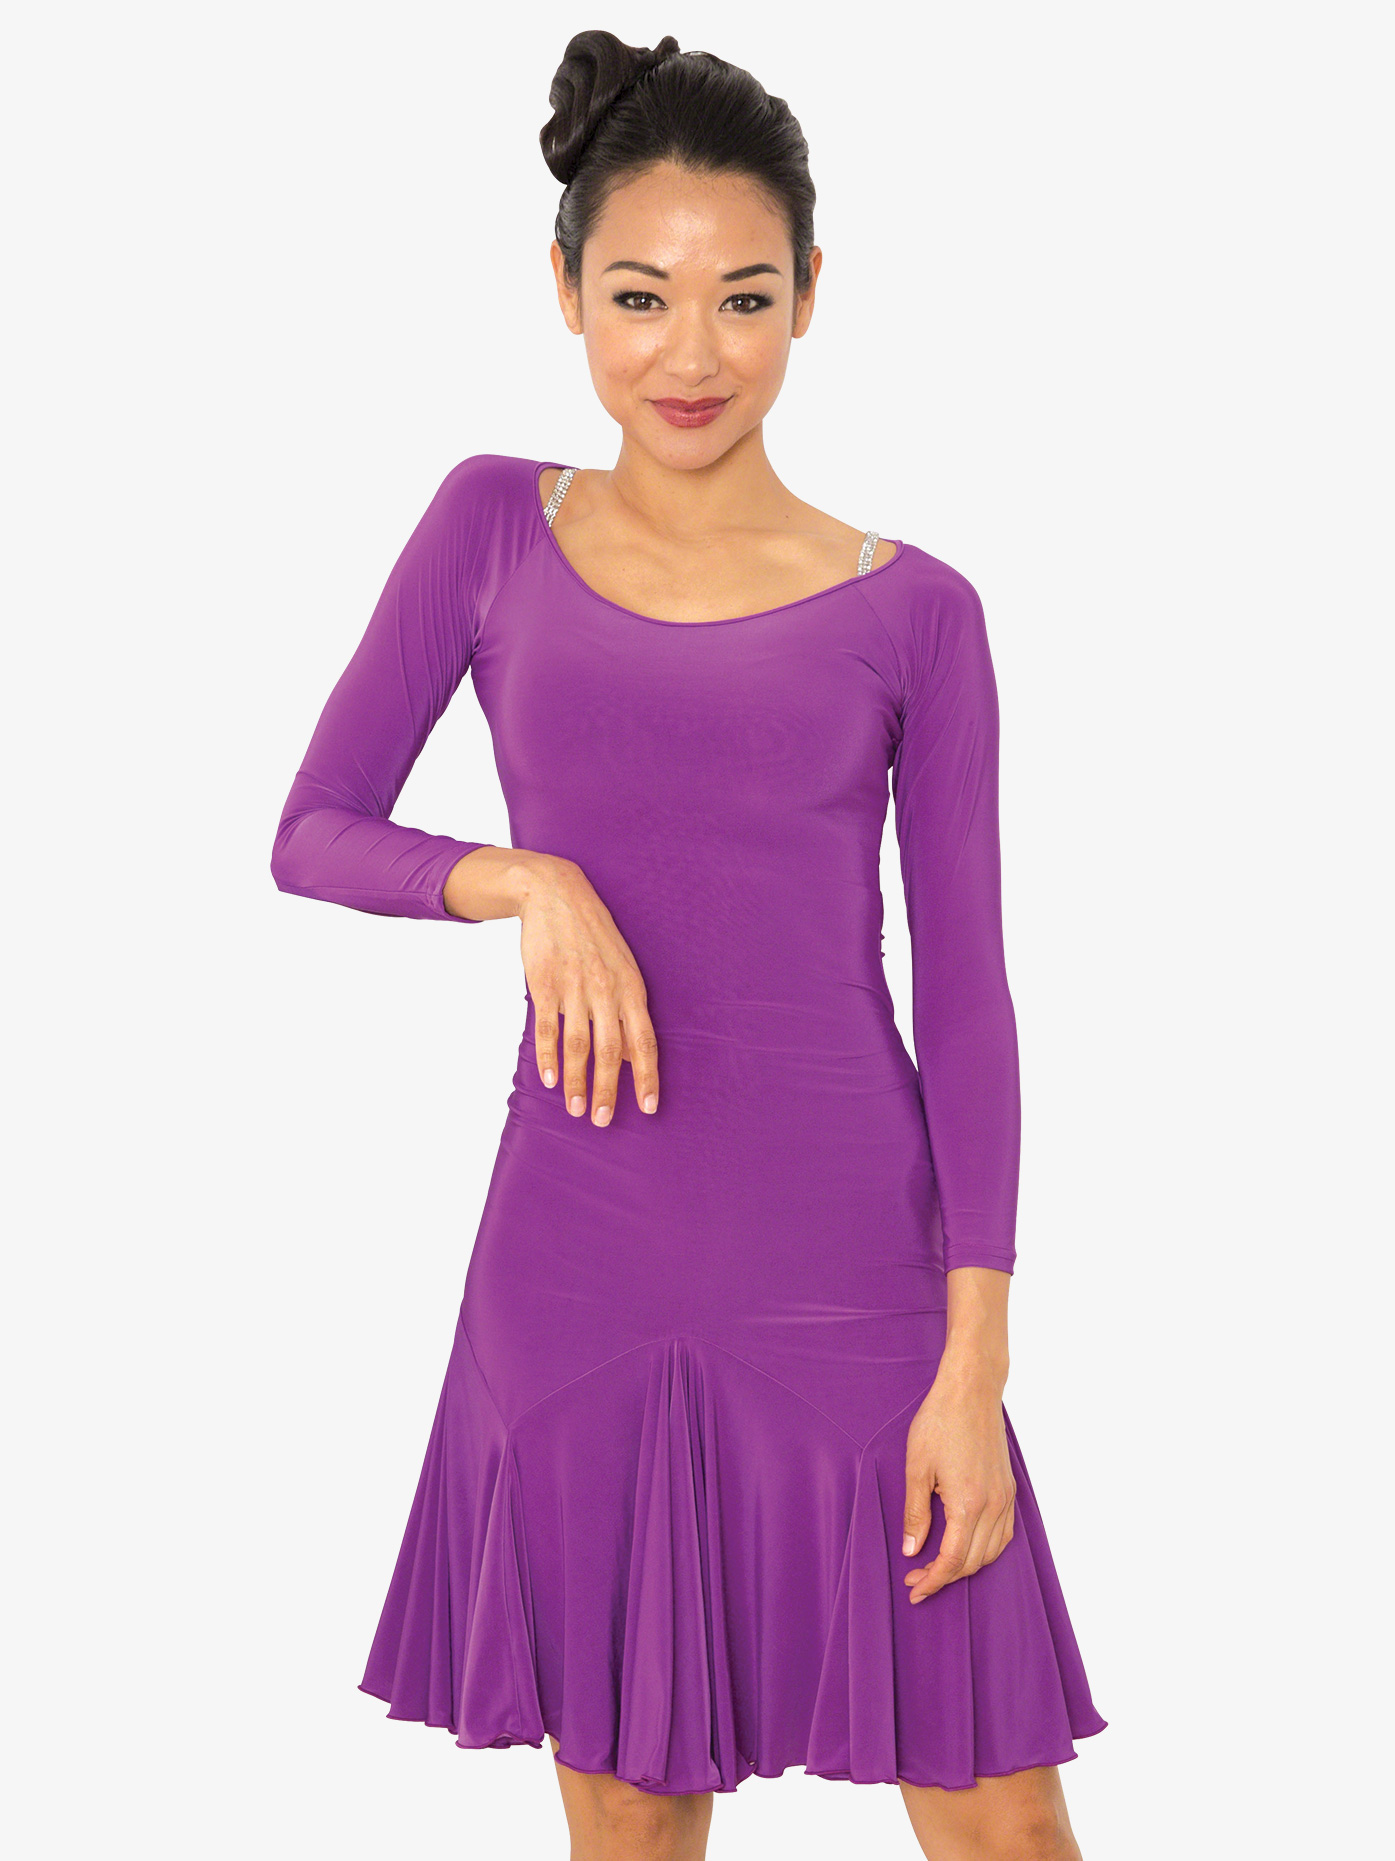 Dance America Womens Back Cutout Short Ballroom Dance Dress D802